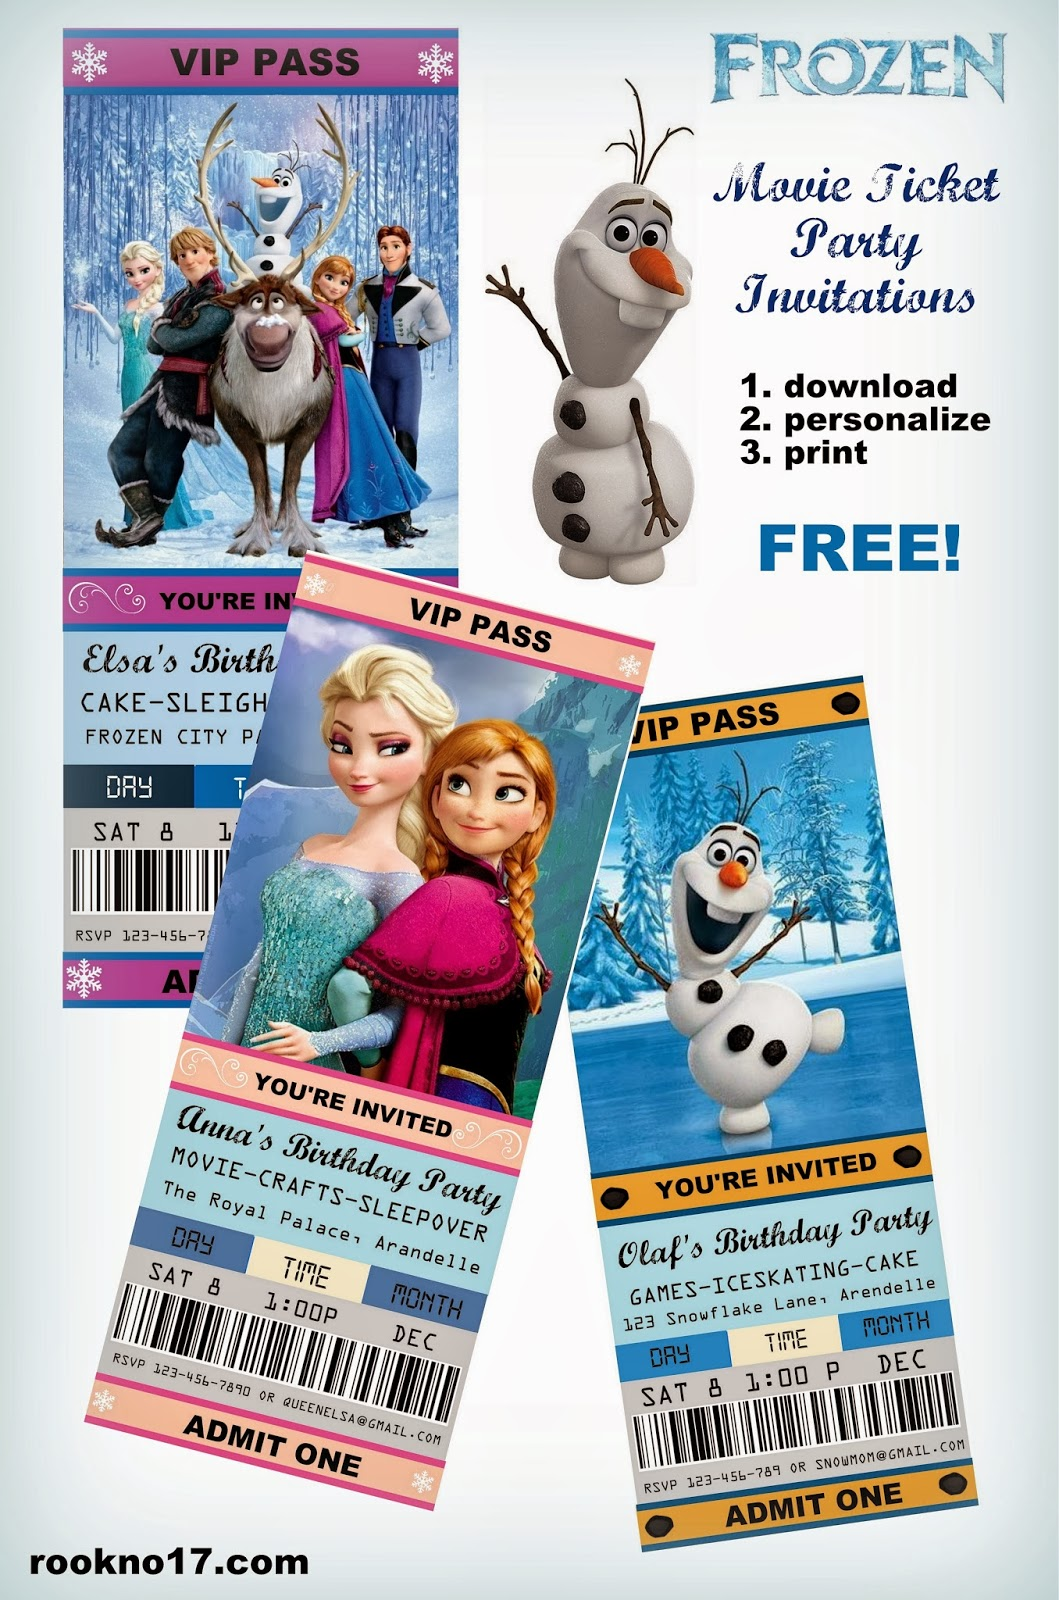 Movie Ticket Style FROZEN Party Invitations (Free Download) And 20+ Ideas  For The Ultimate Frozen Party!  Free Printable Ticket Style Invitations